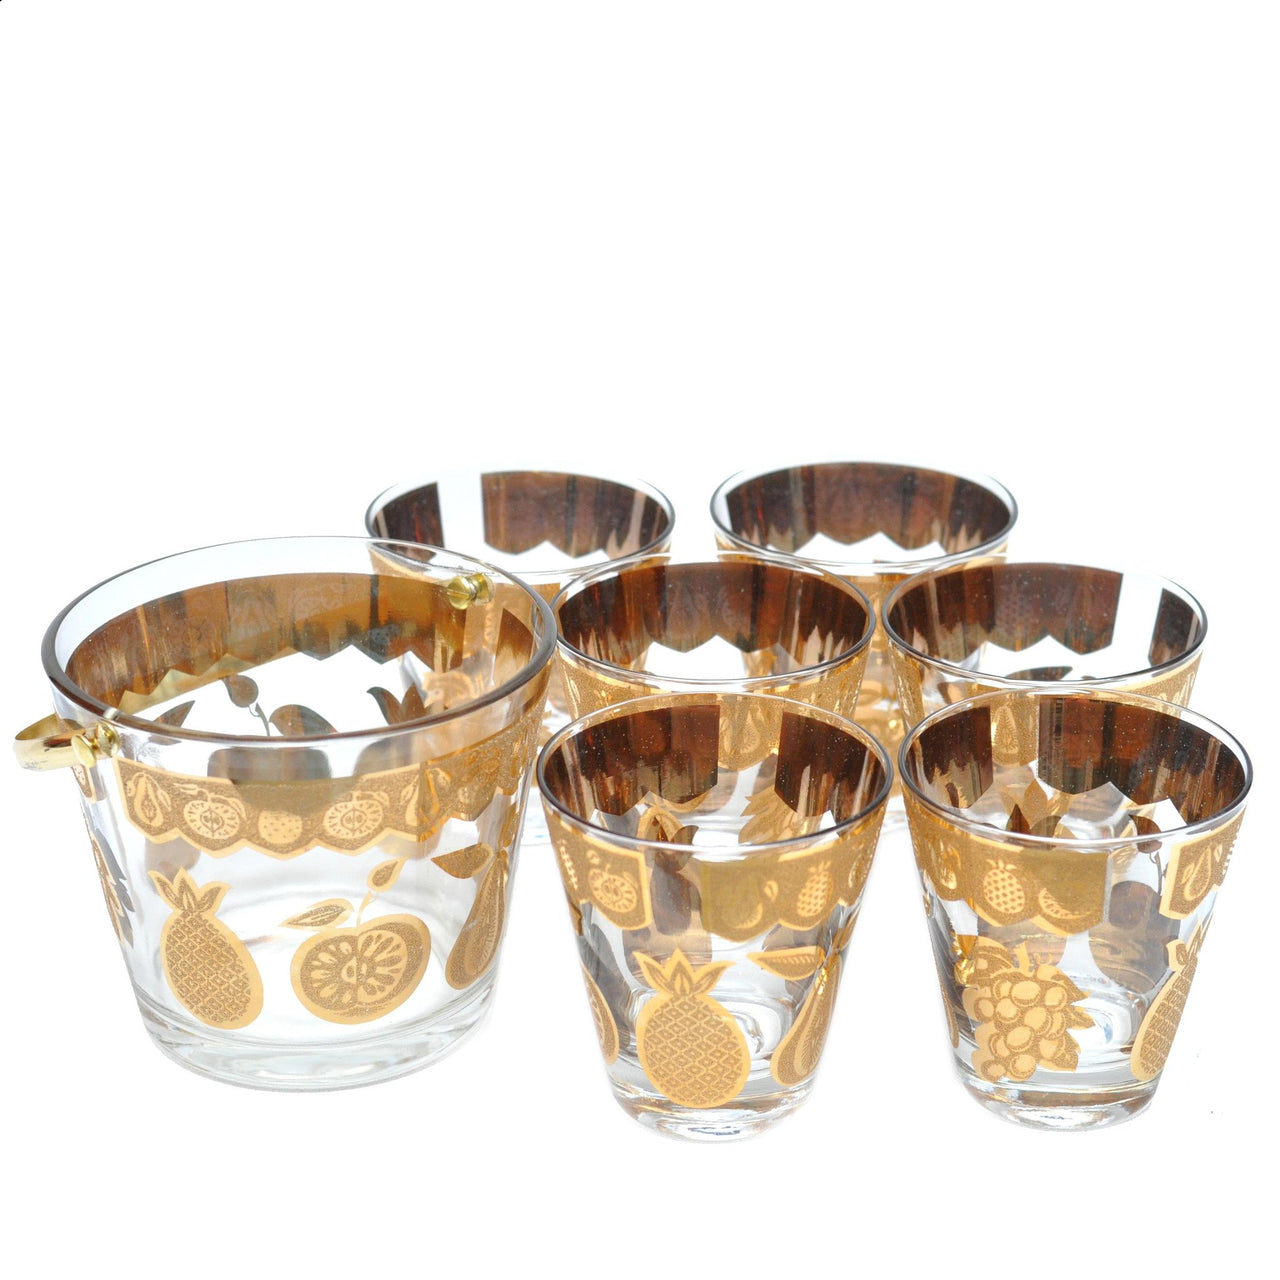 The Hour Shop, Vintage Culver Florentine Gold Fruit Glasses Set